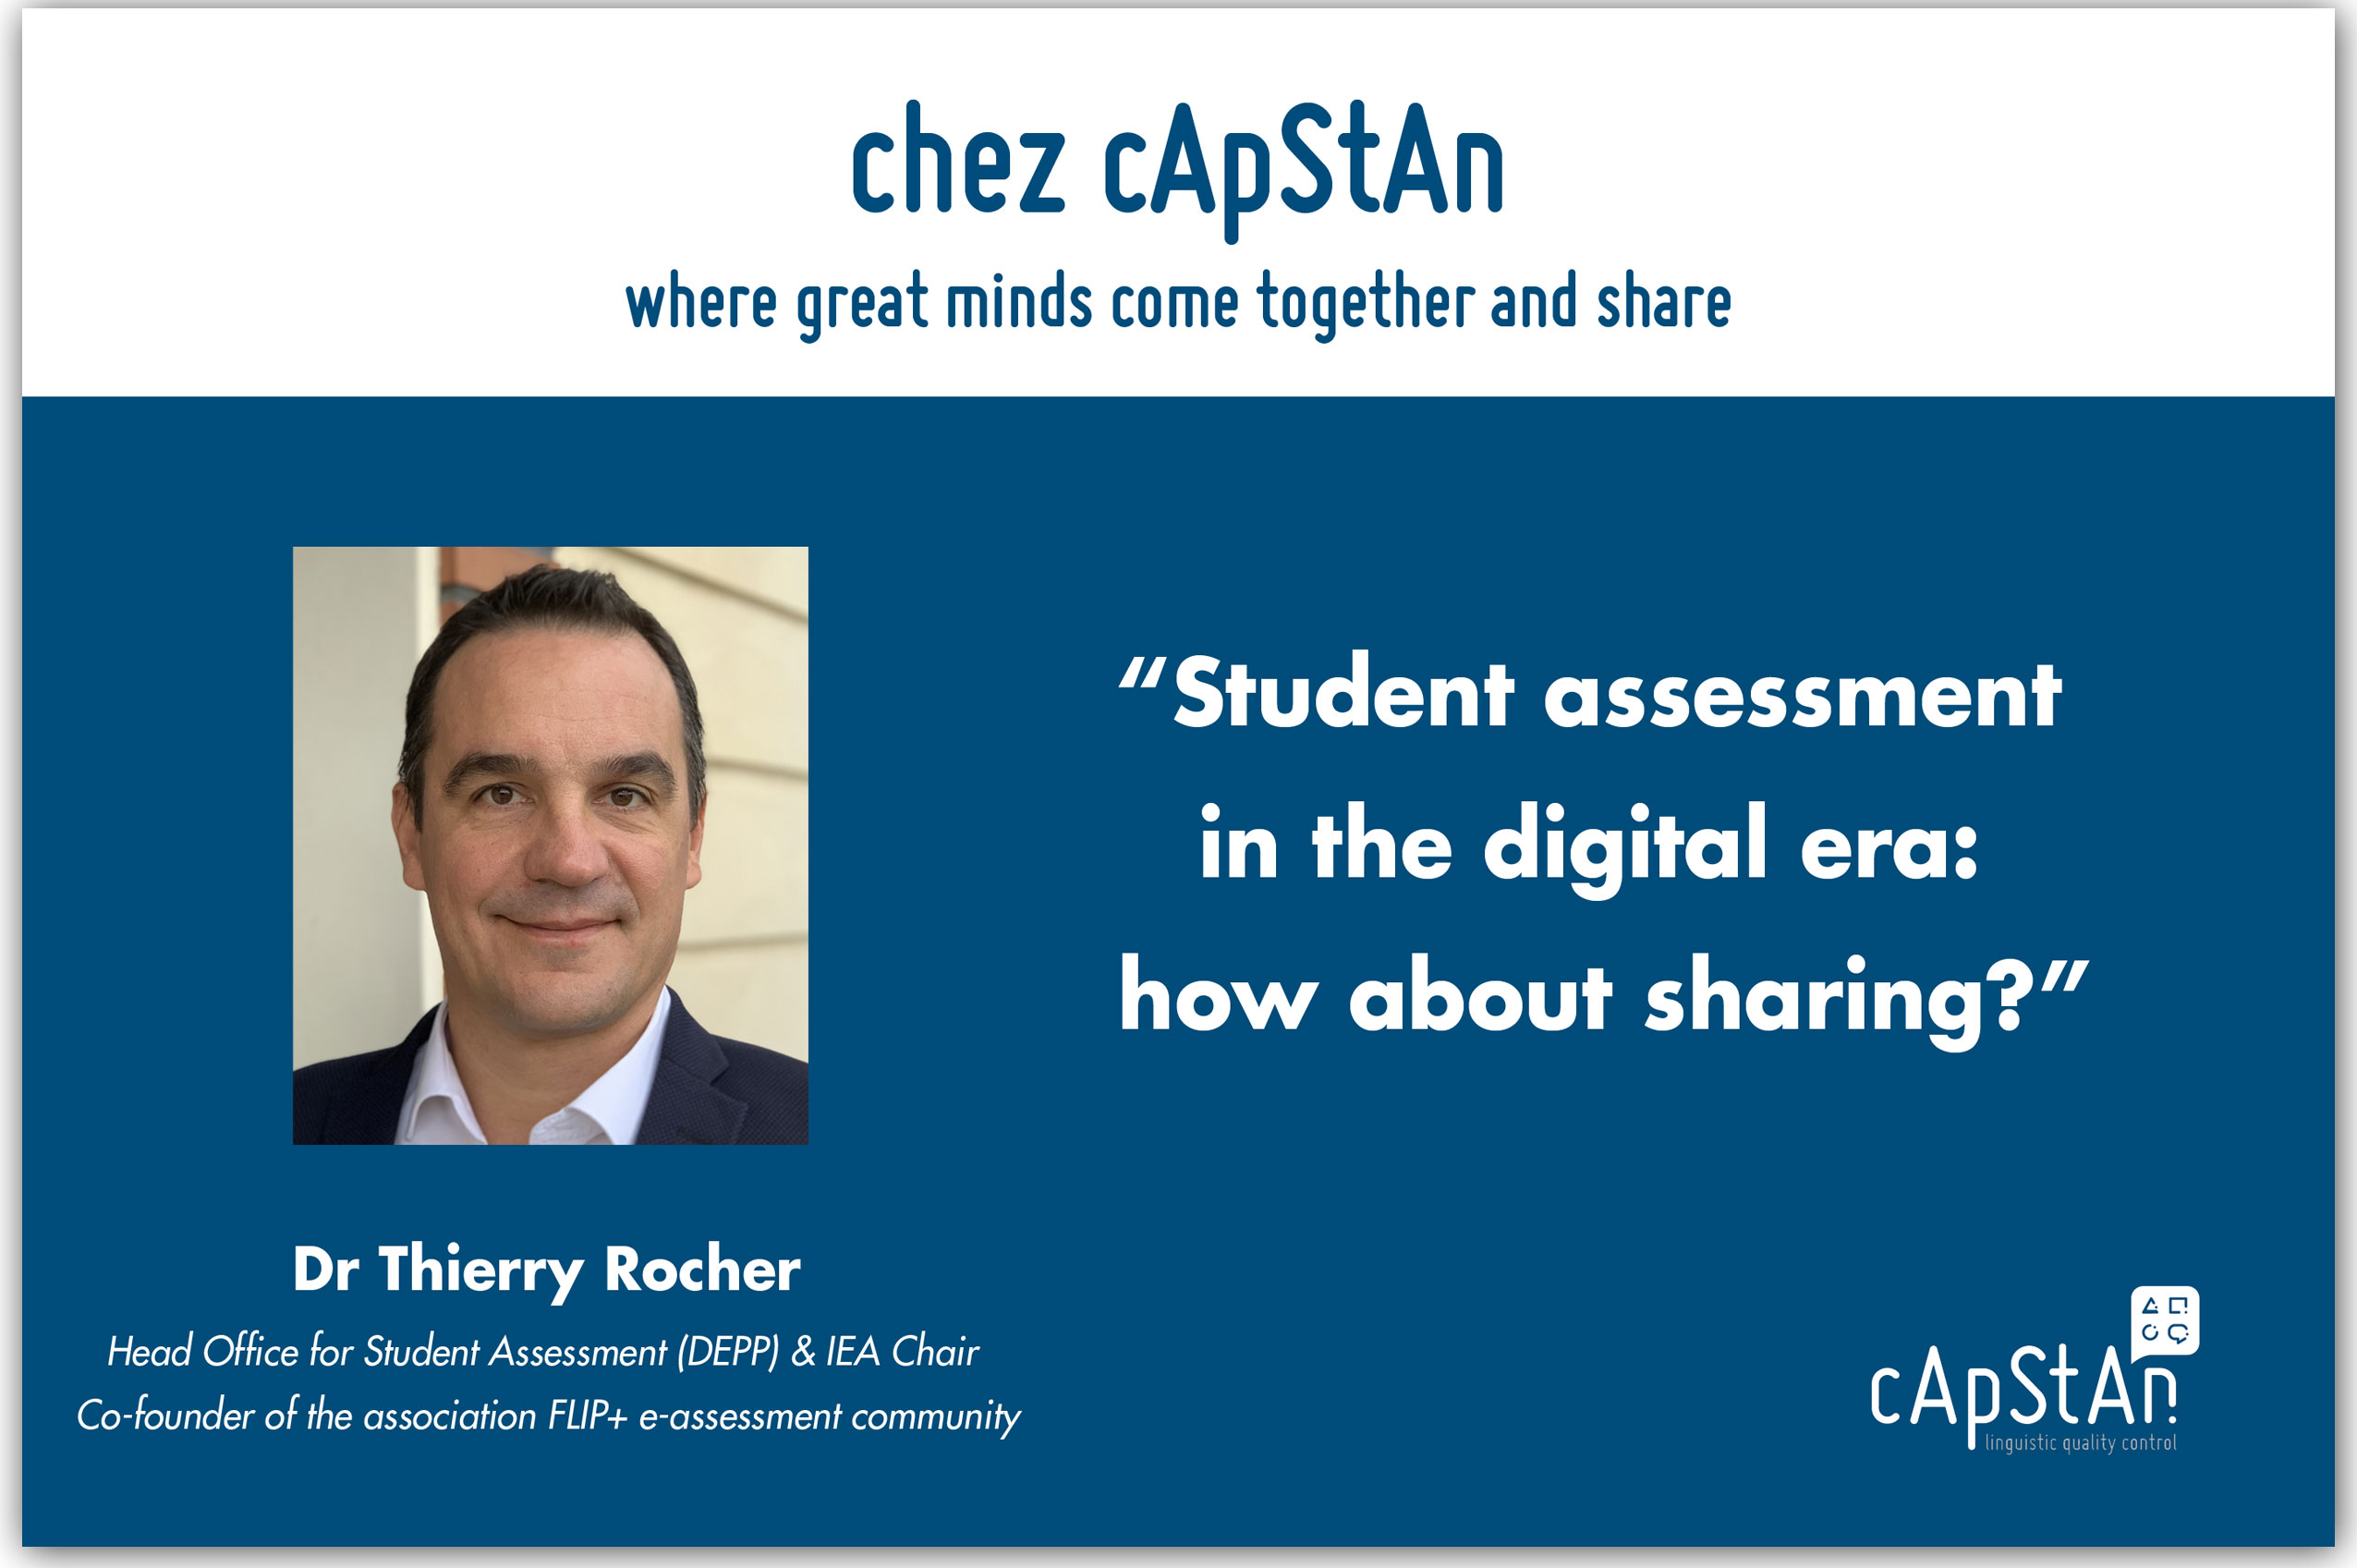 Student assessment in the digital era: how about sharing?